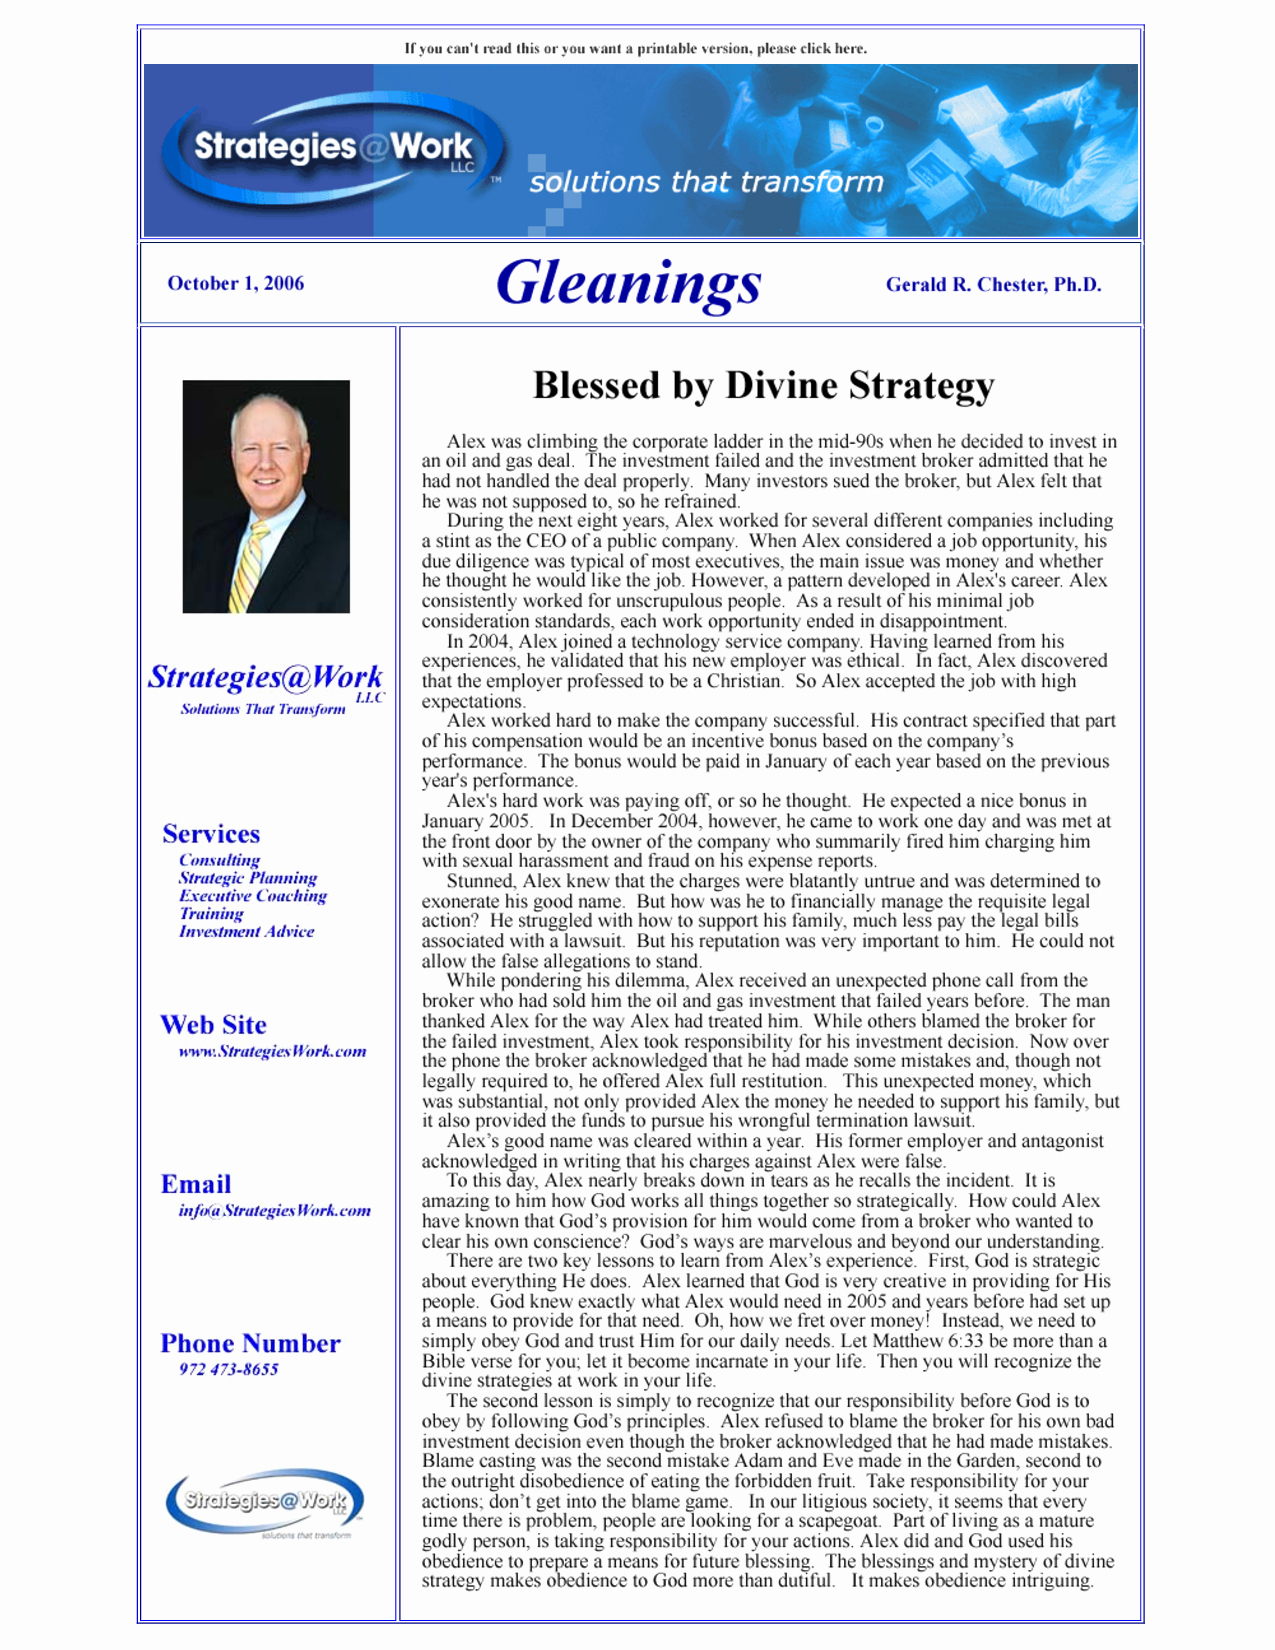 News Letter Templates In Word Beautiful Microsoft Word Newsletter Templates